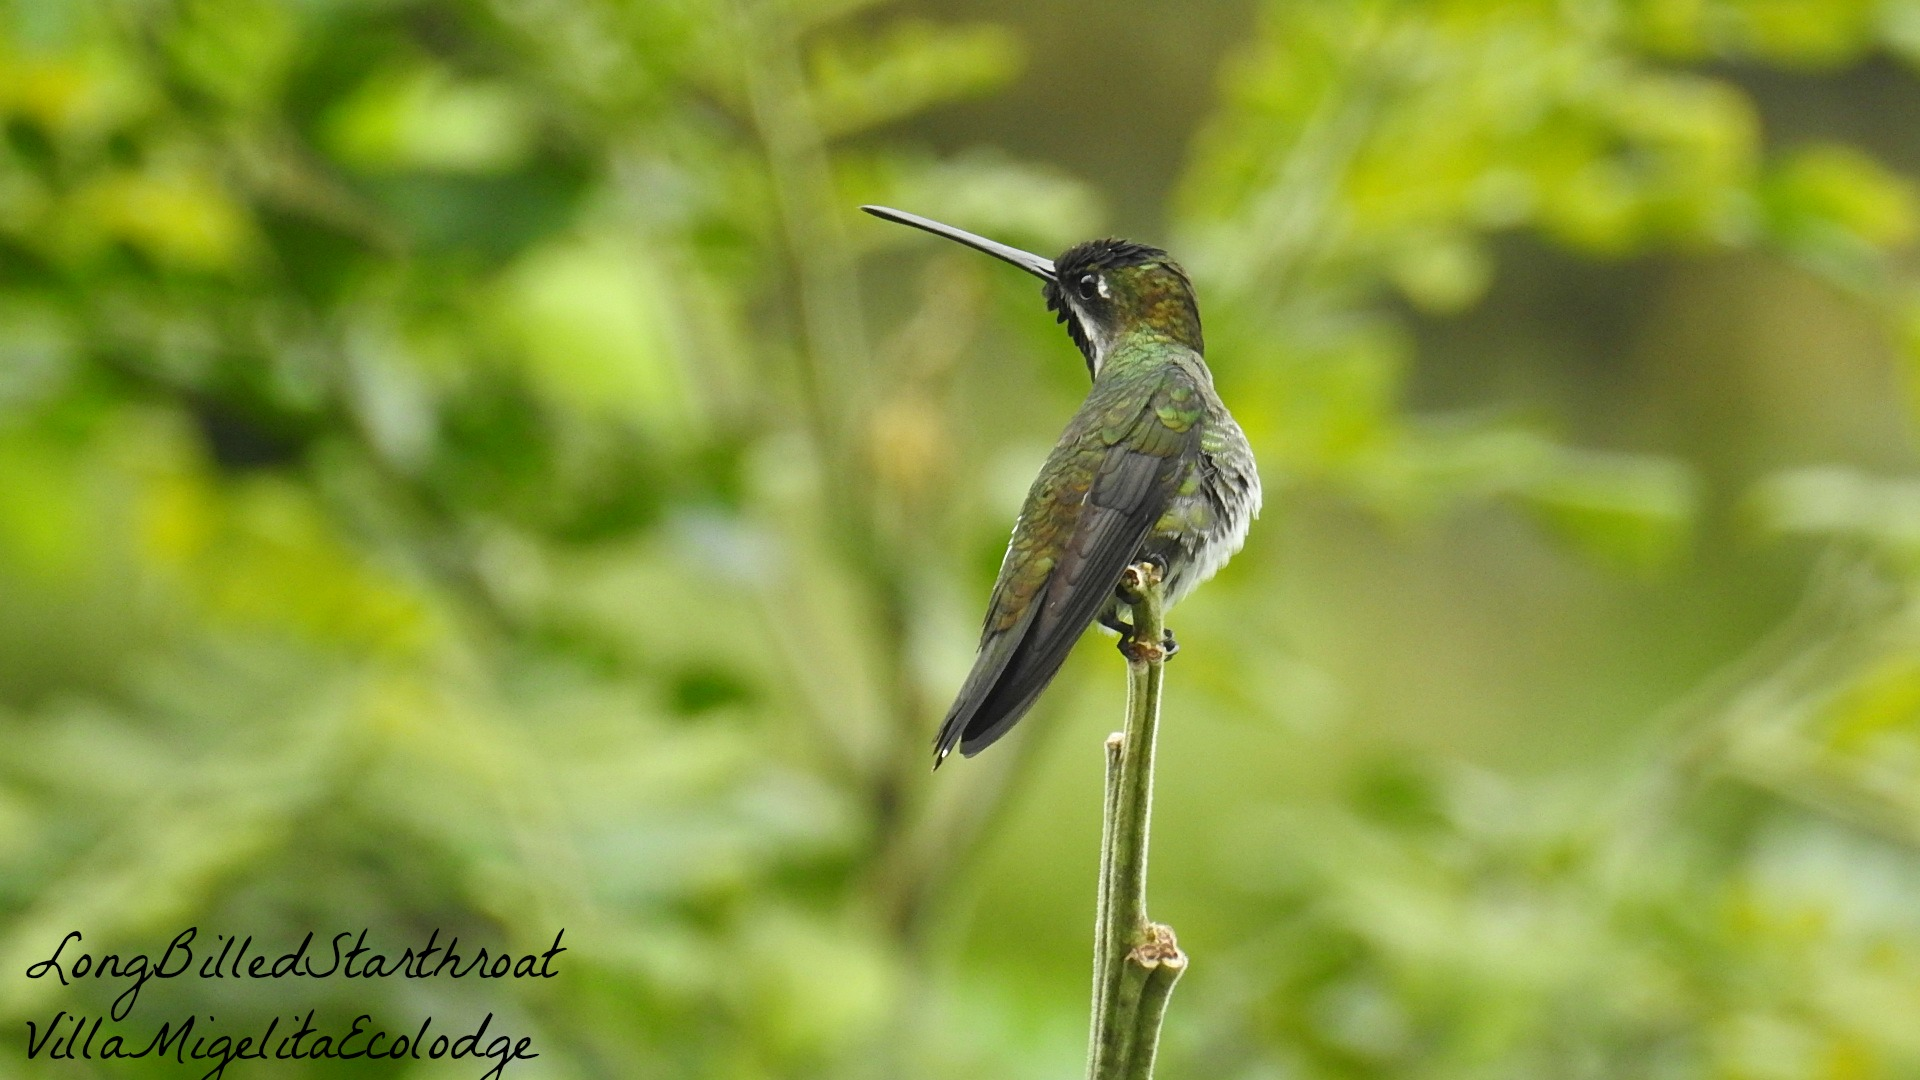 Long Billed Starthroat 4